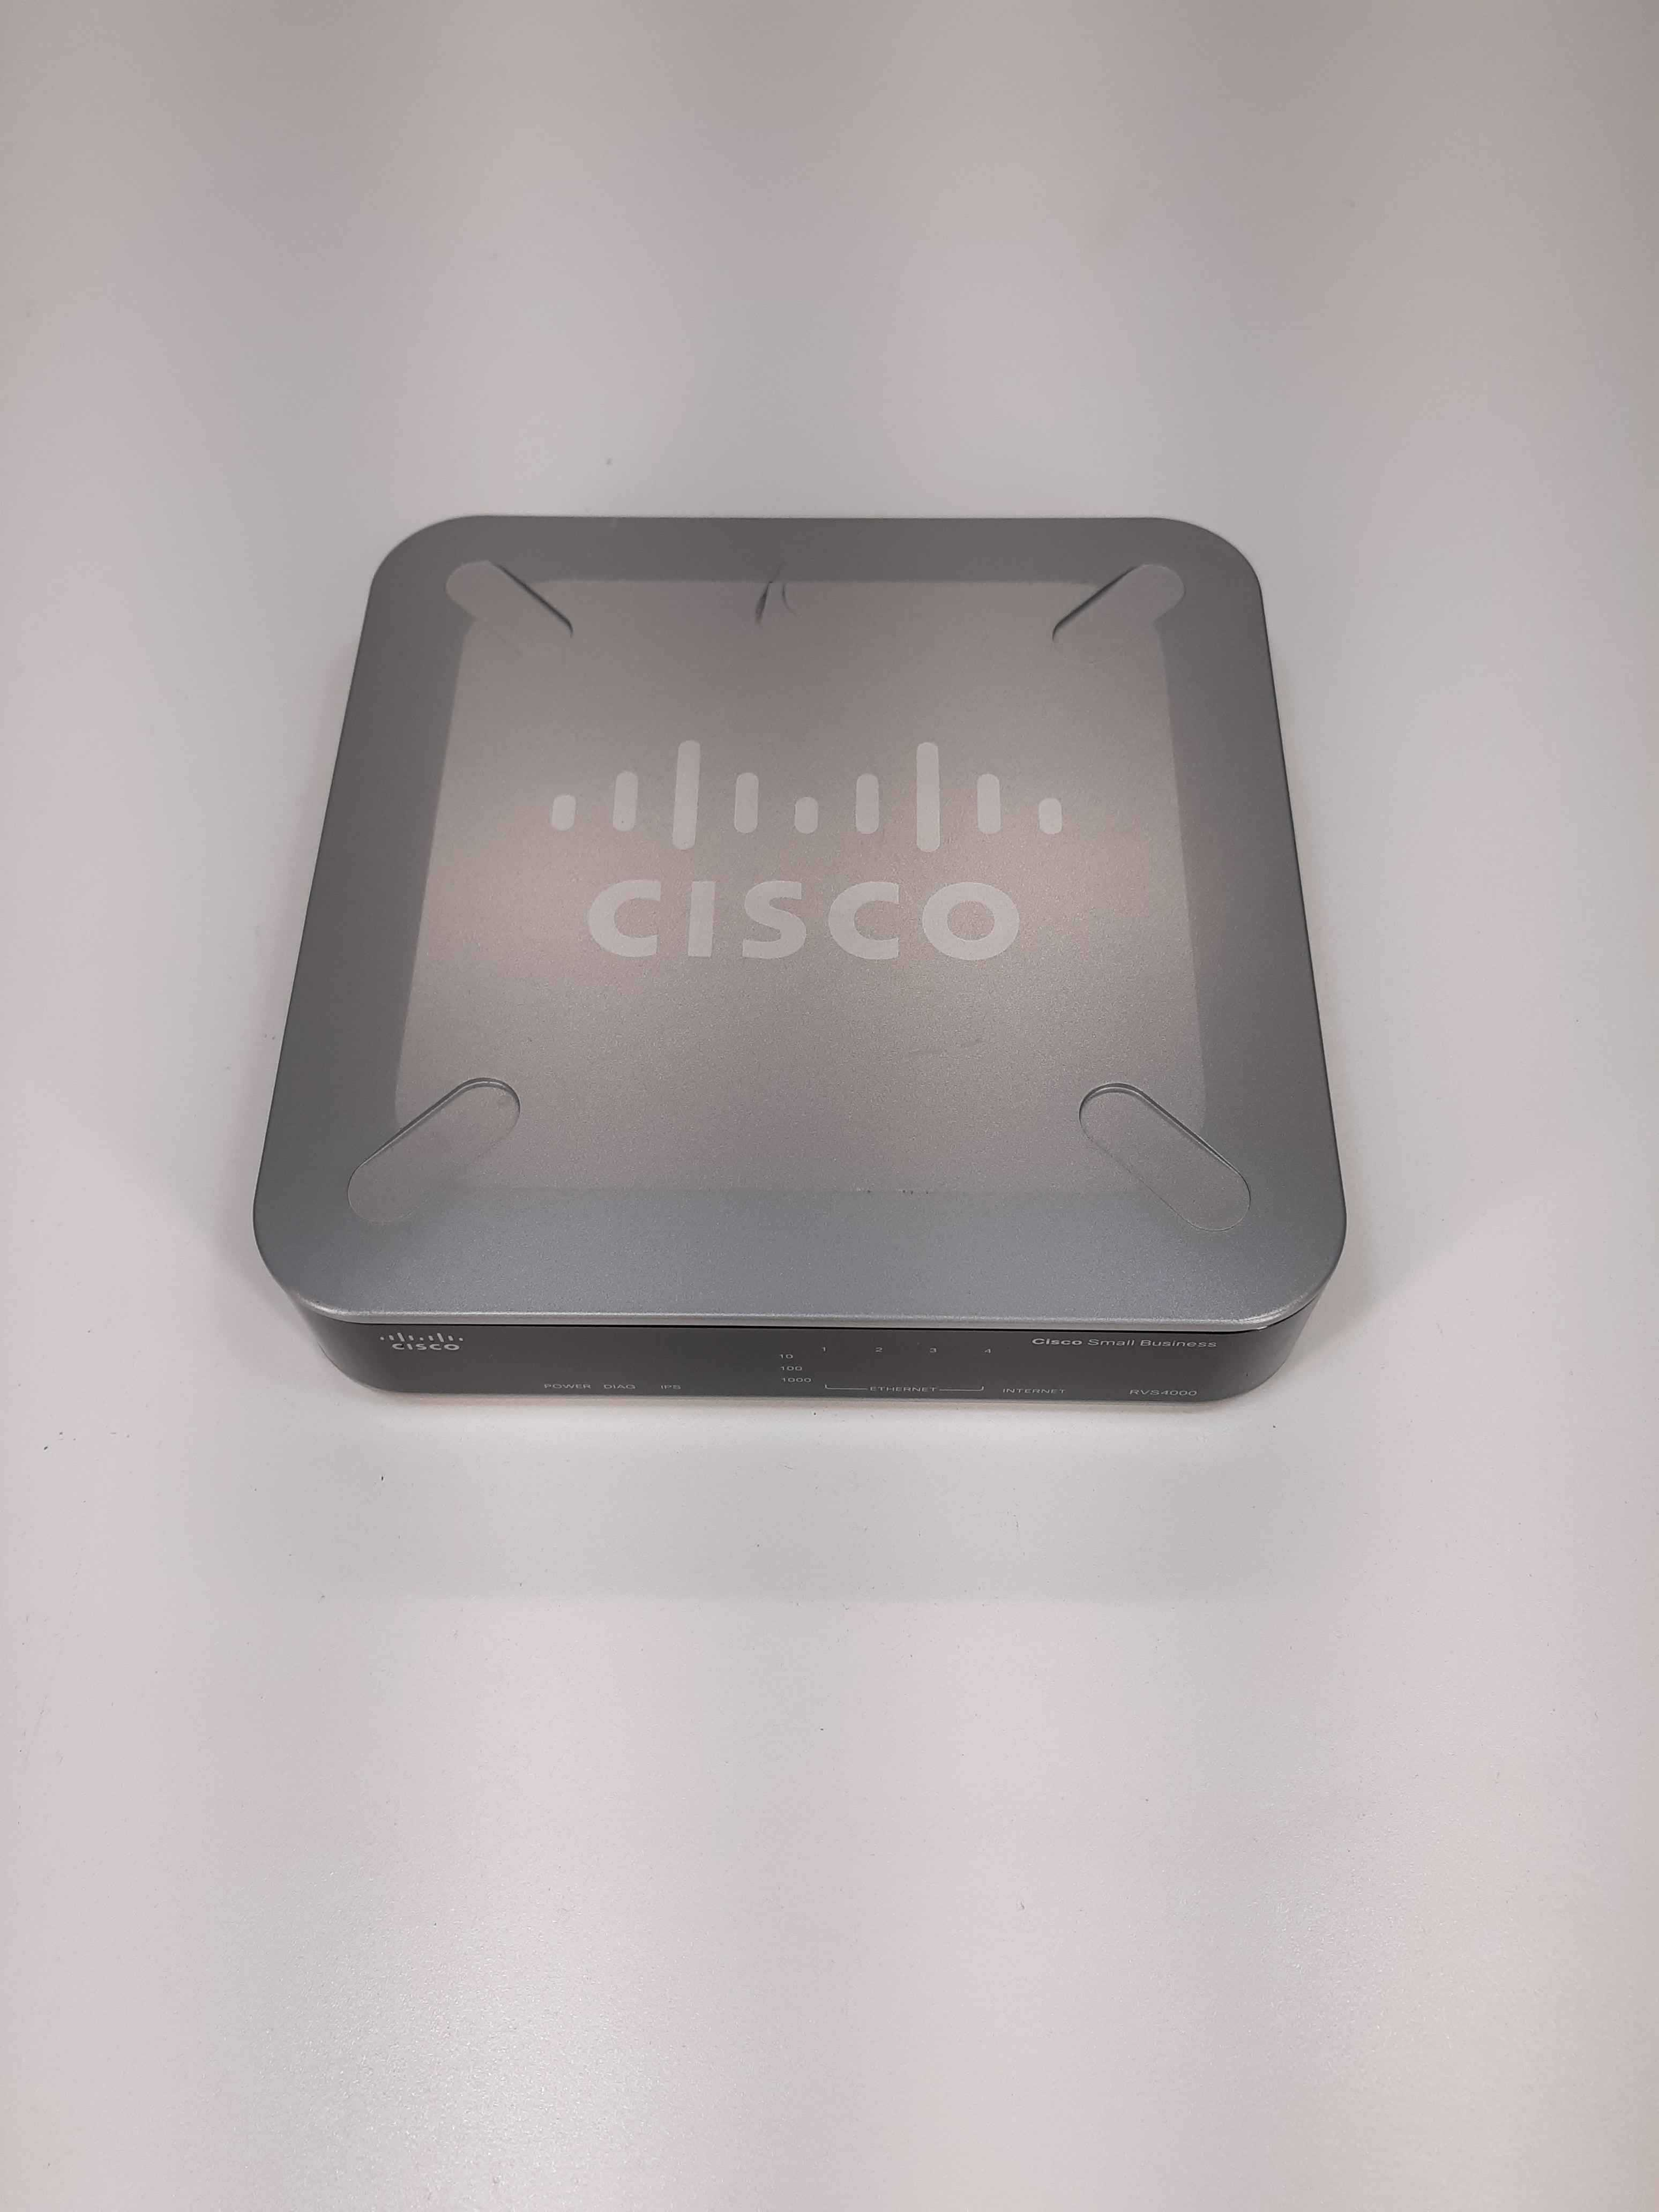 Cisco RVS4000 1000 Mbps 4-Port Gigabit Wired Small Business Router